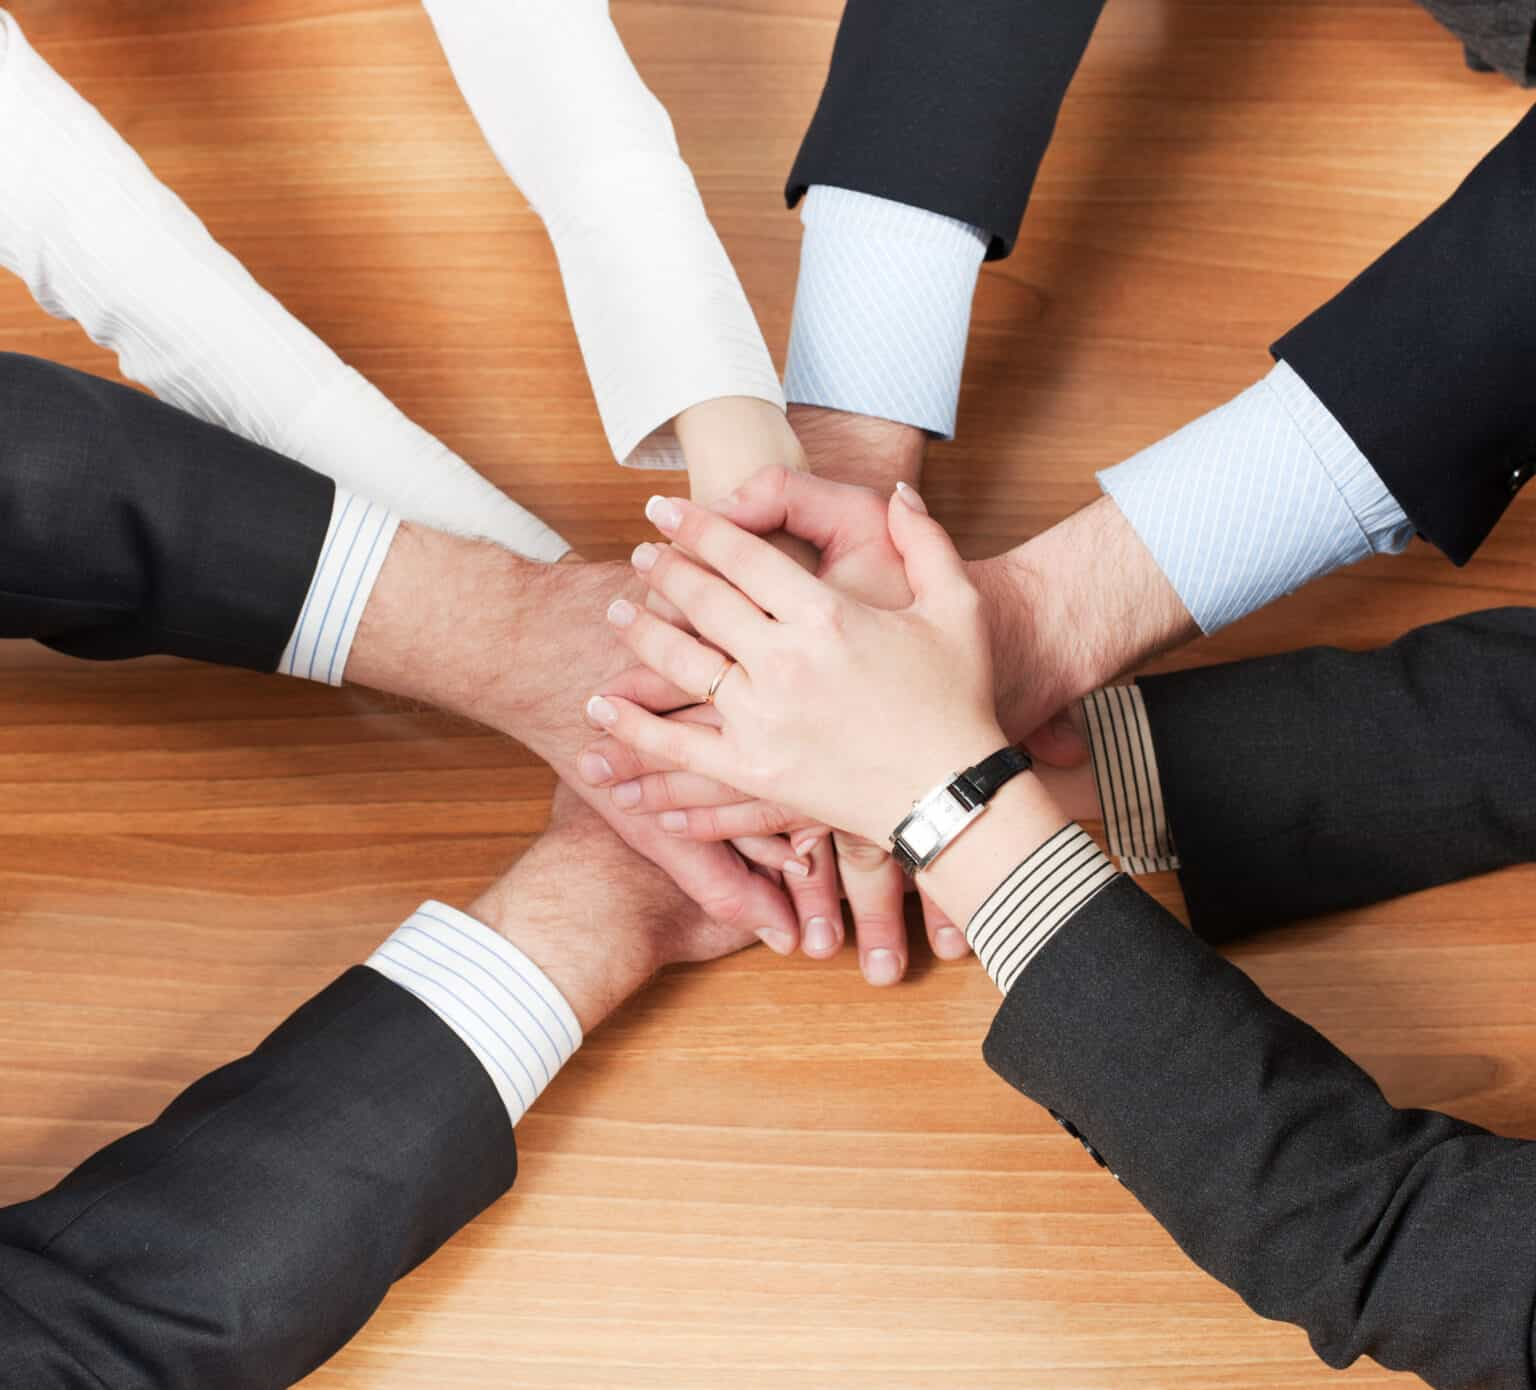 Office workers hold hands together on table